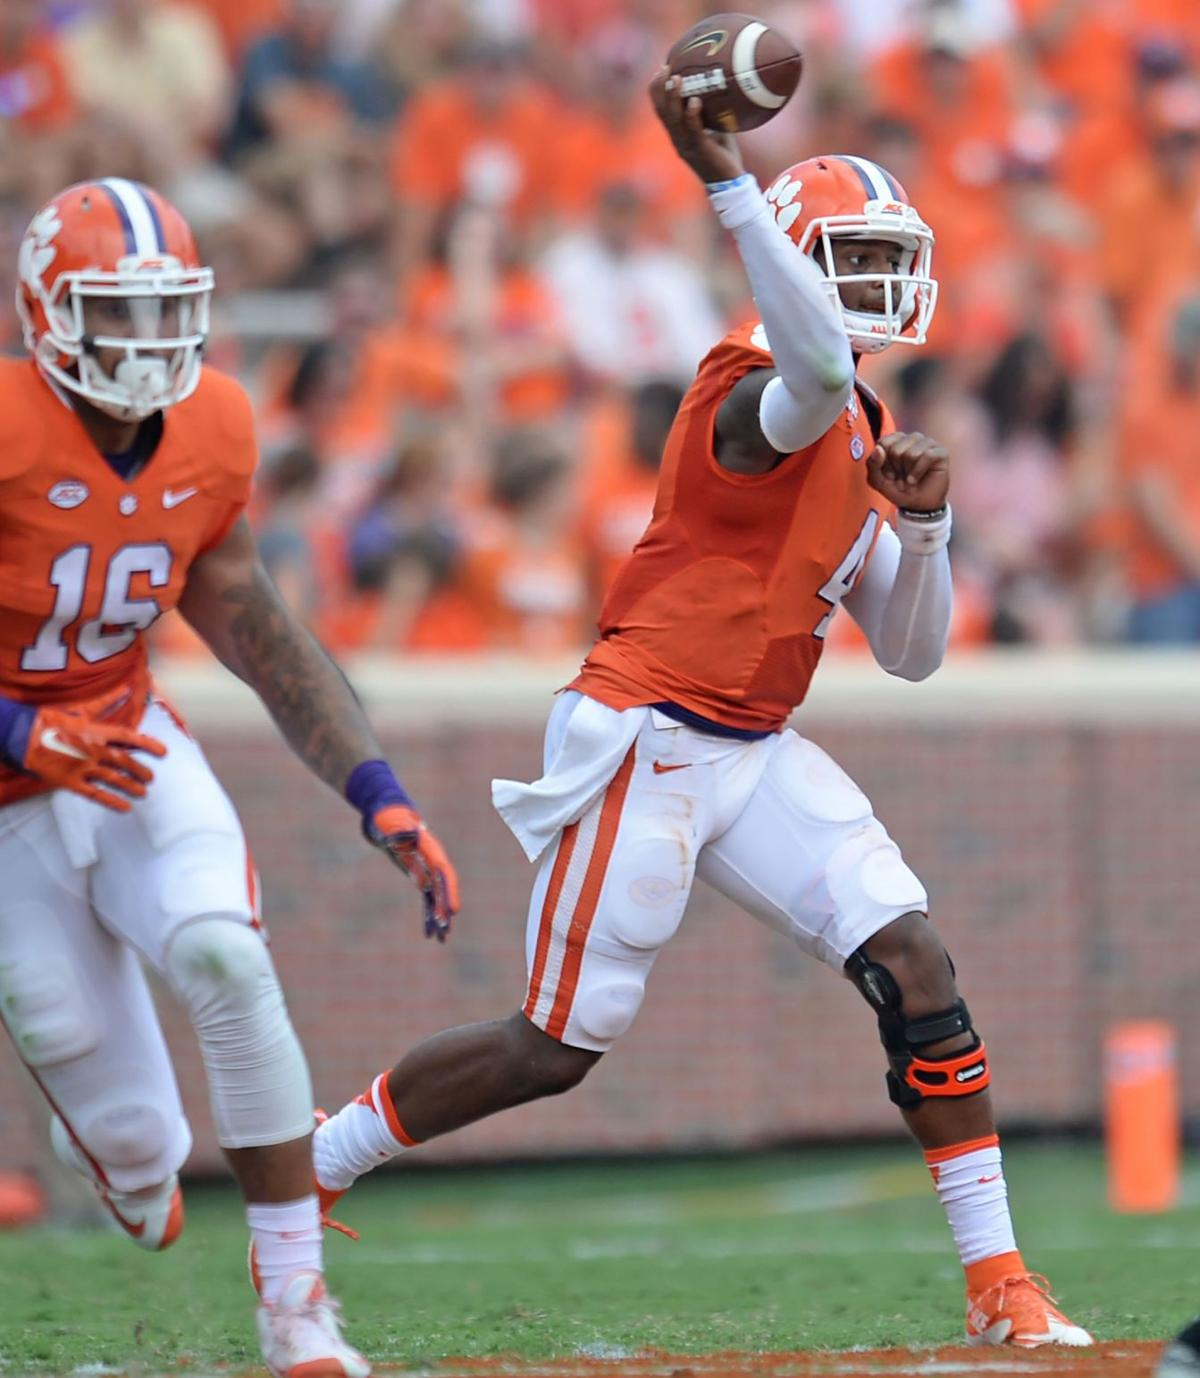 One Hour to Kickoff: 'Next man up', next game up for No. 12 Clemson